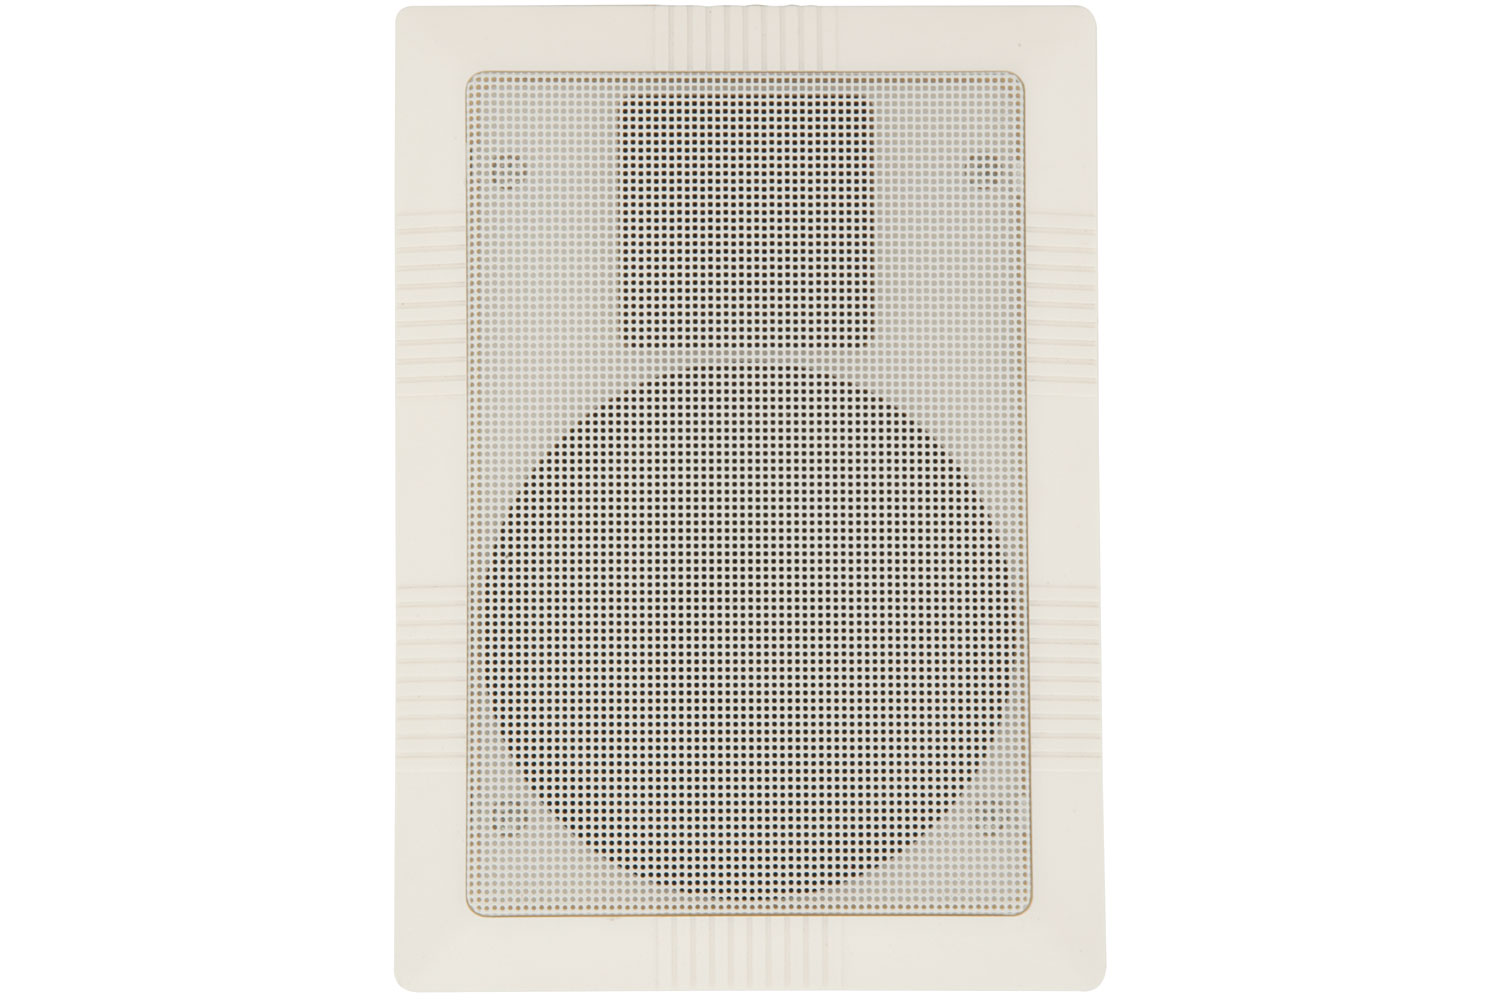 2-Way In Wall/Ceiling Speaker IW5 Image | Metro Solutions